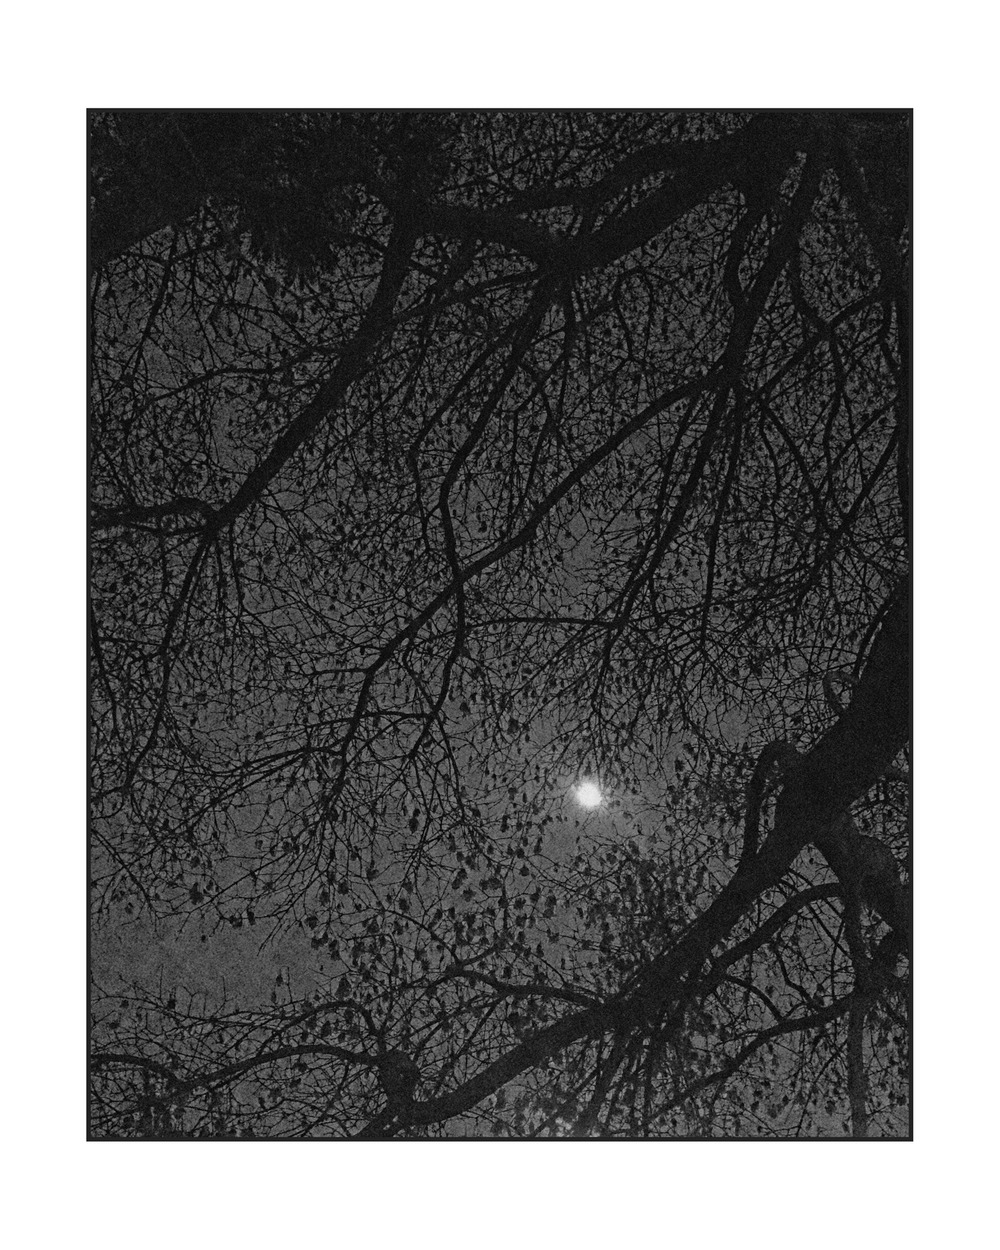 160219_Moon_Through_Naked_Tree_web.jpg